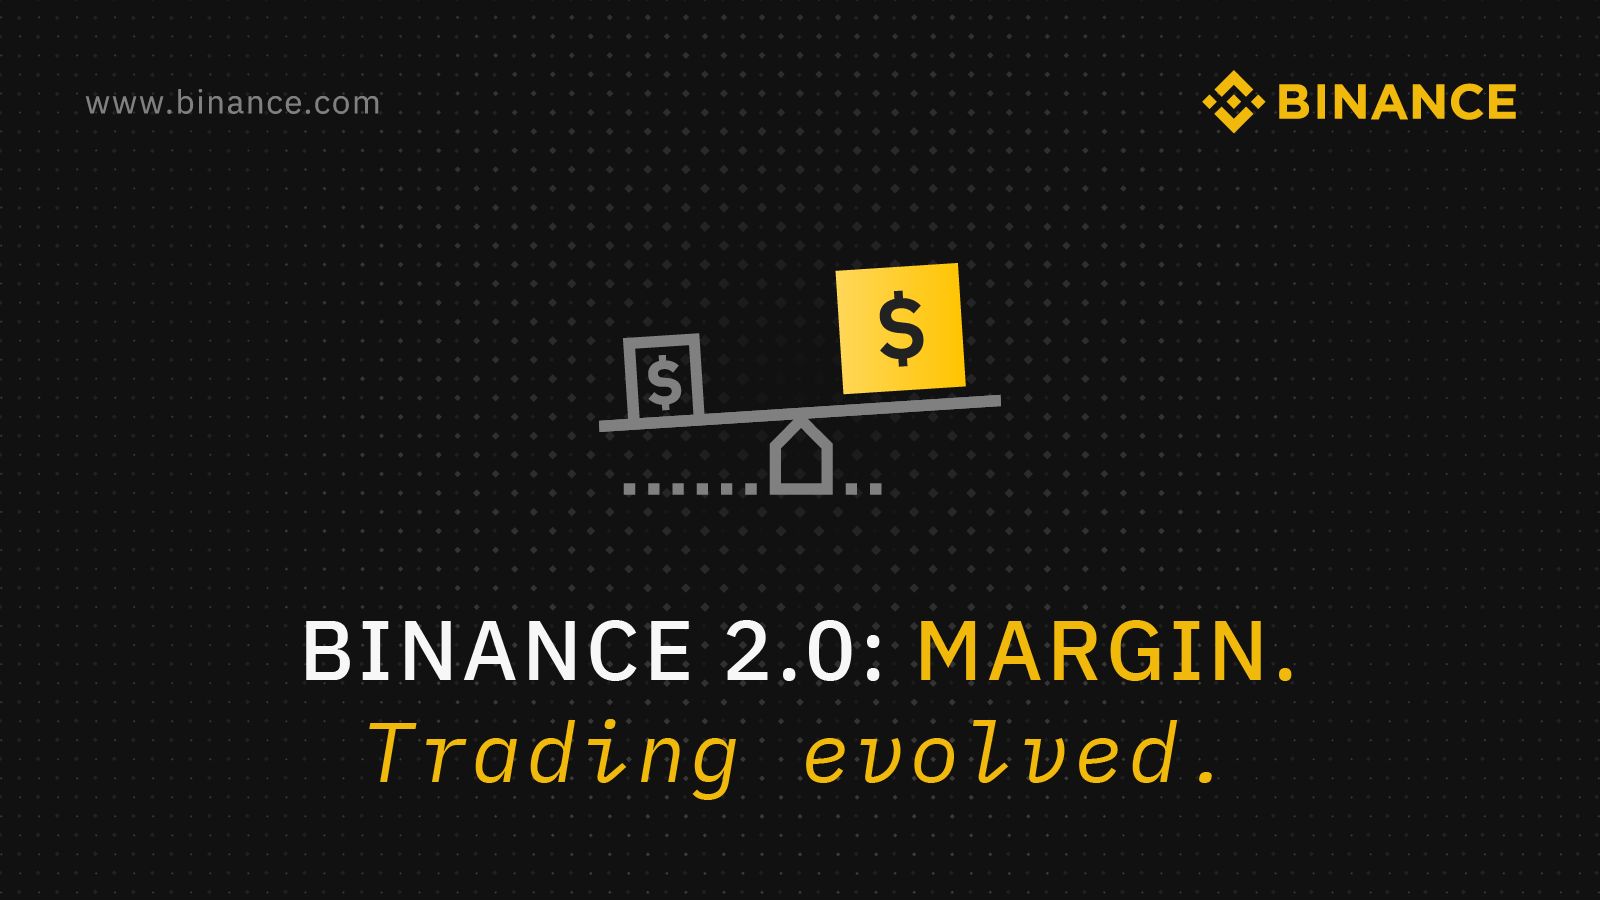 Binance Adds Margin as Exchange Competition Heats Up | Digital Money